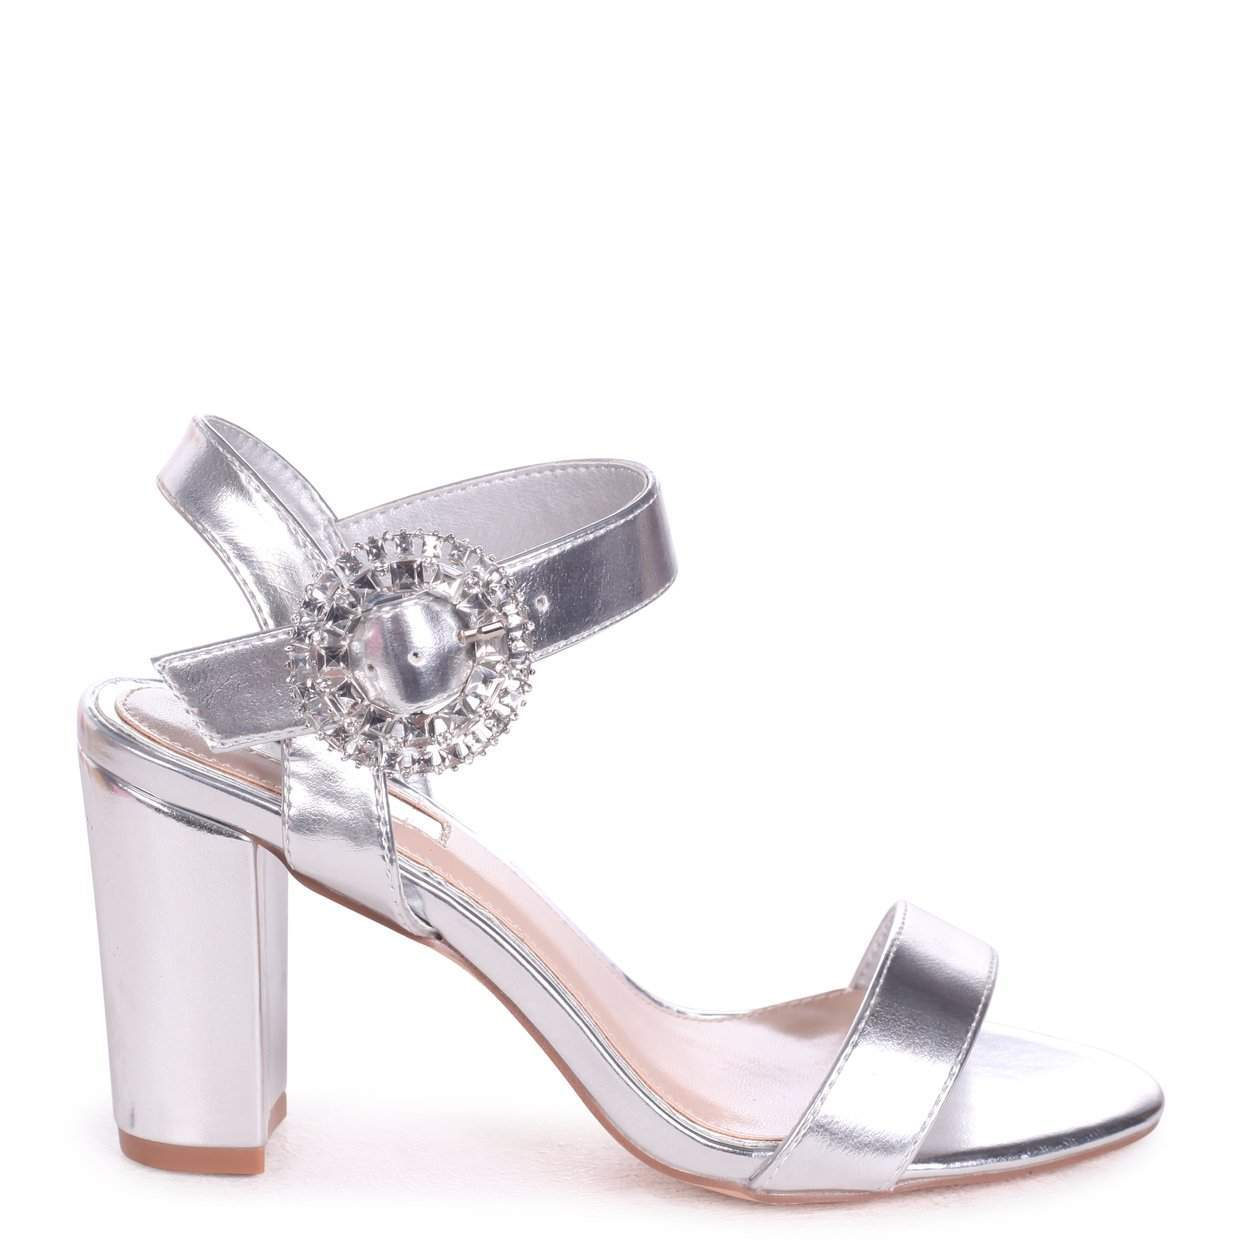 DIAMOND - Silver Metallic Heeled Sandal With Heavily Embellished Buckle